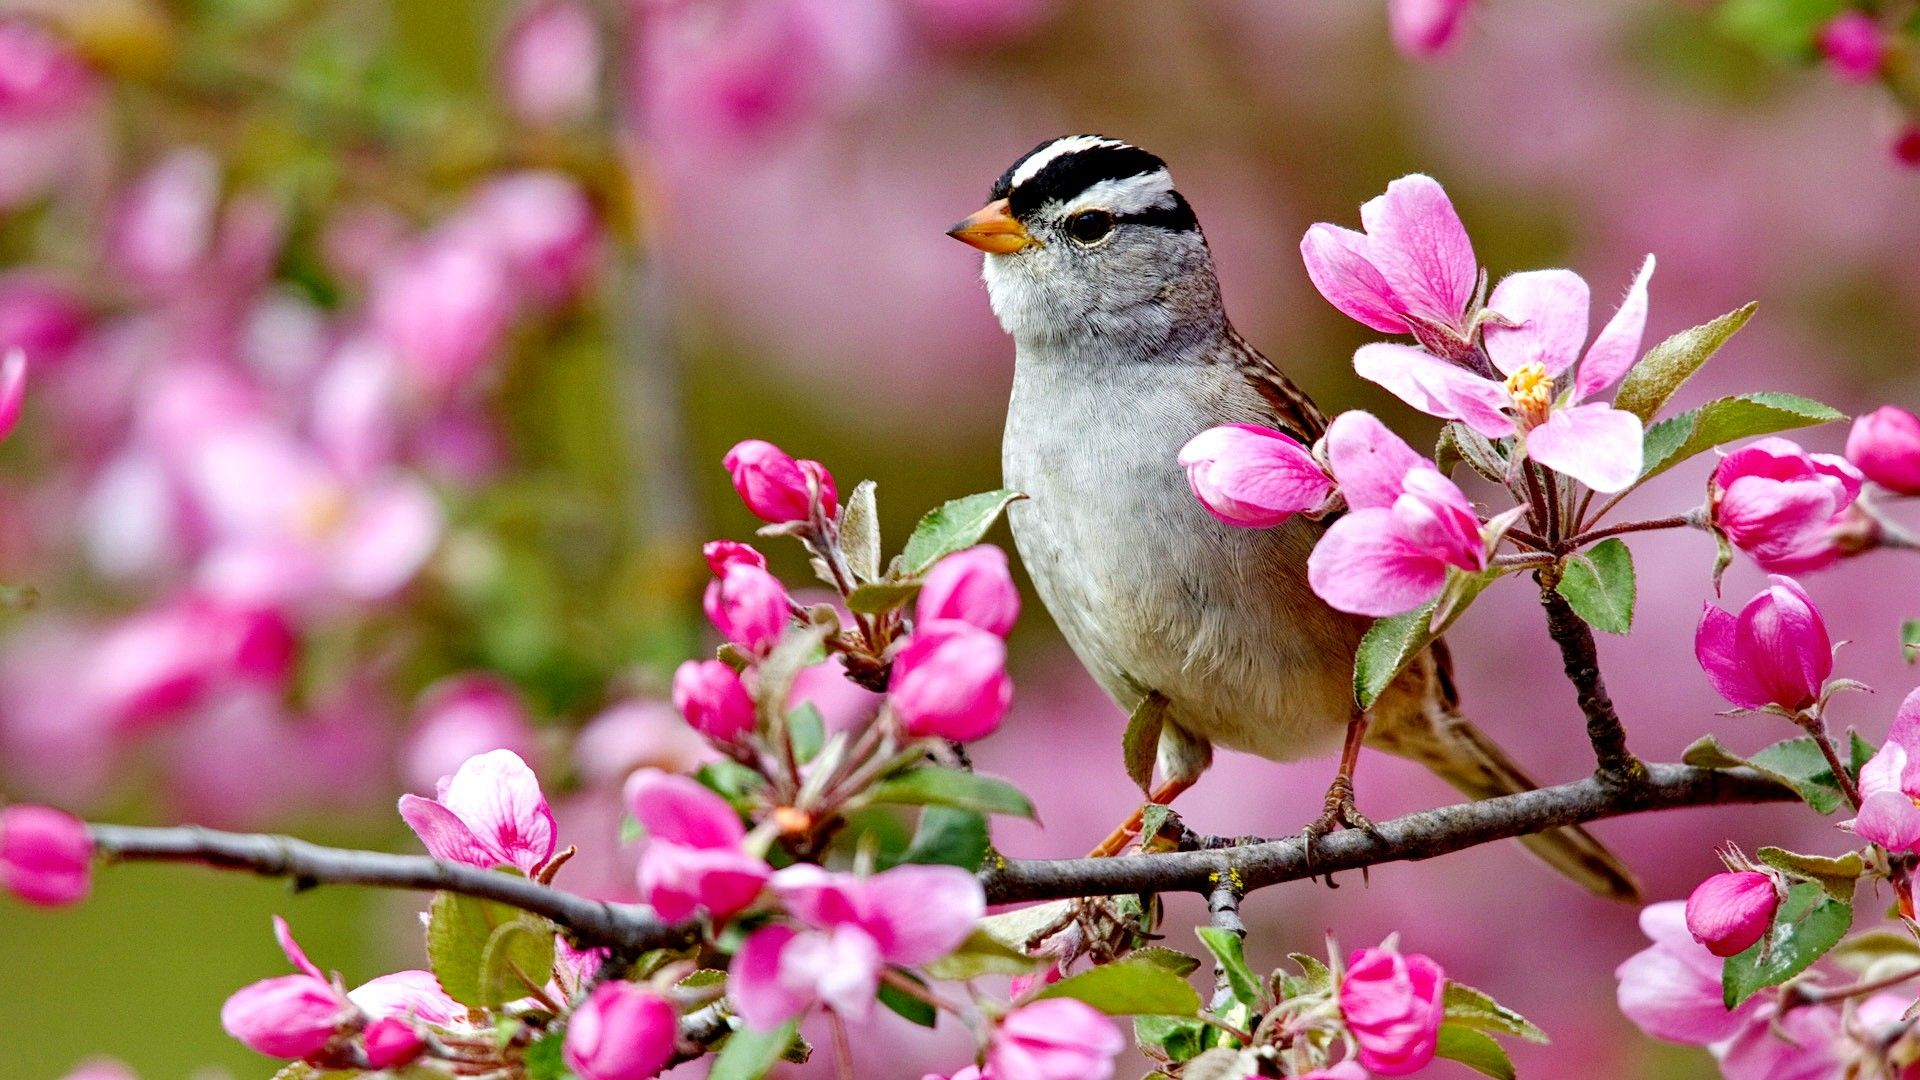 Flowers Bird Spring Flowers Colorful Forces Nature Colors Birds Splendor Pink Tree Buds Landscpae Lovely P Fruhling Wallpaper Fruhlingstiere Hintergrund Vogel